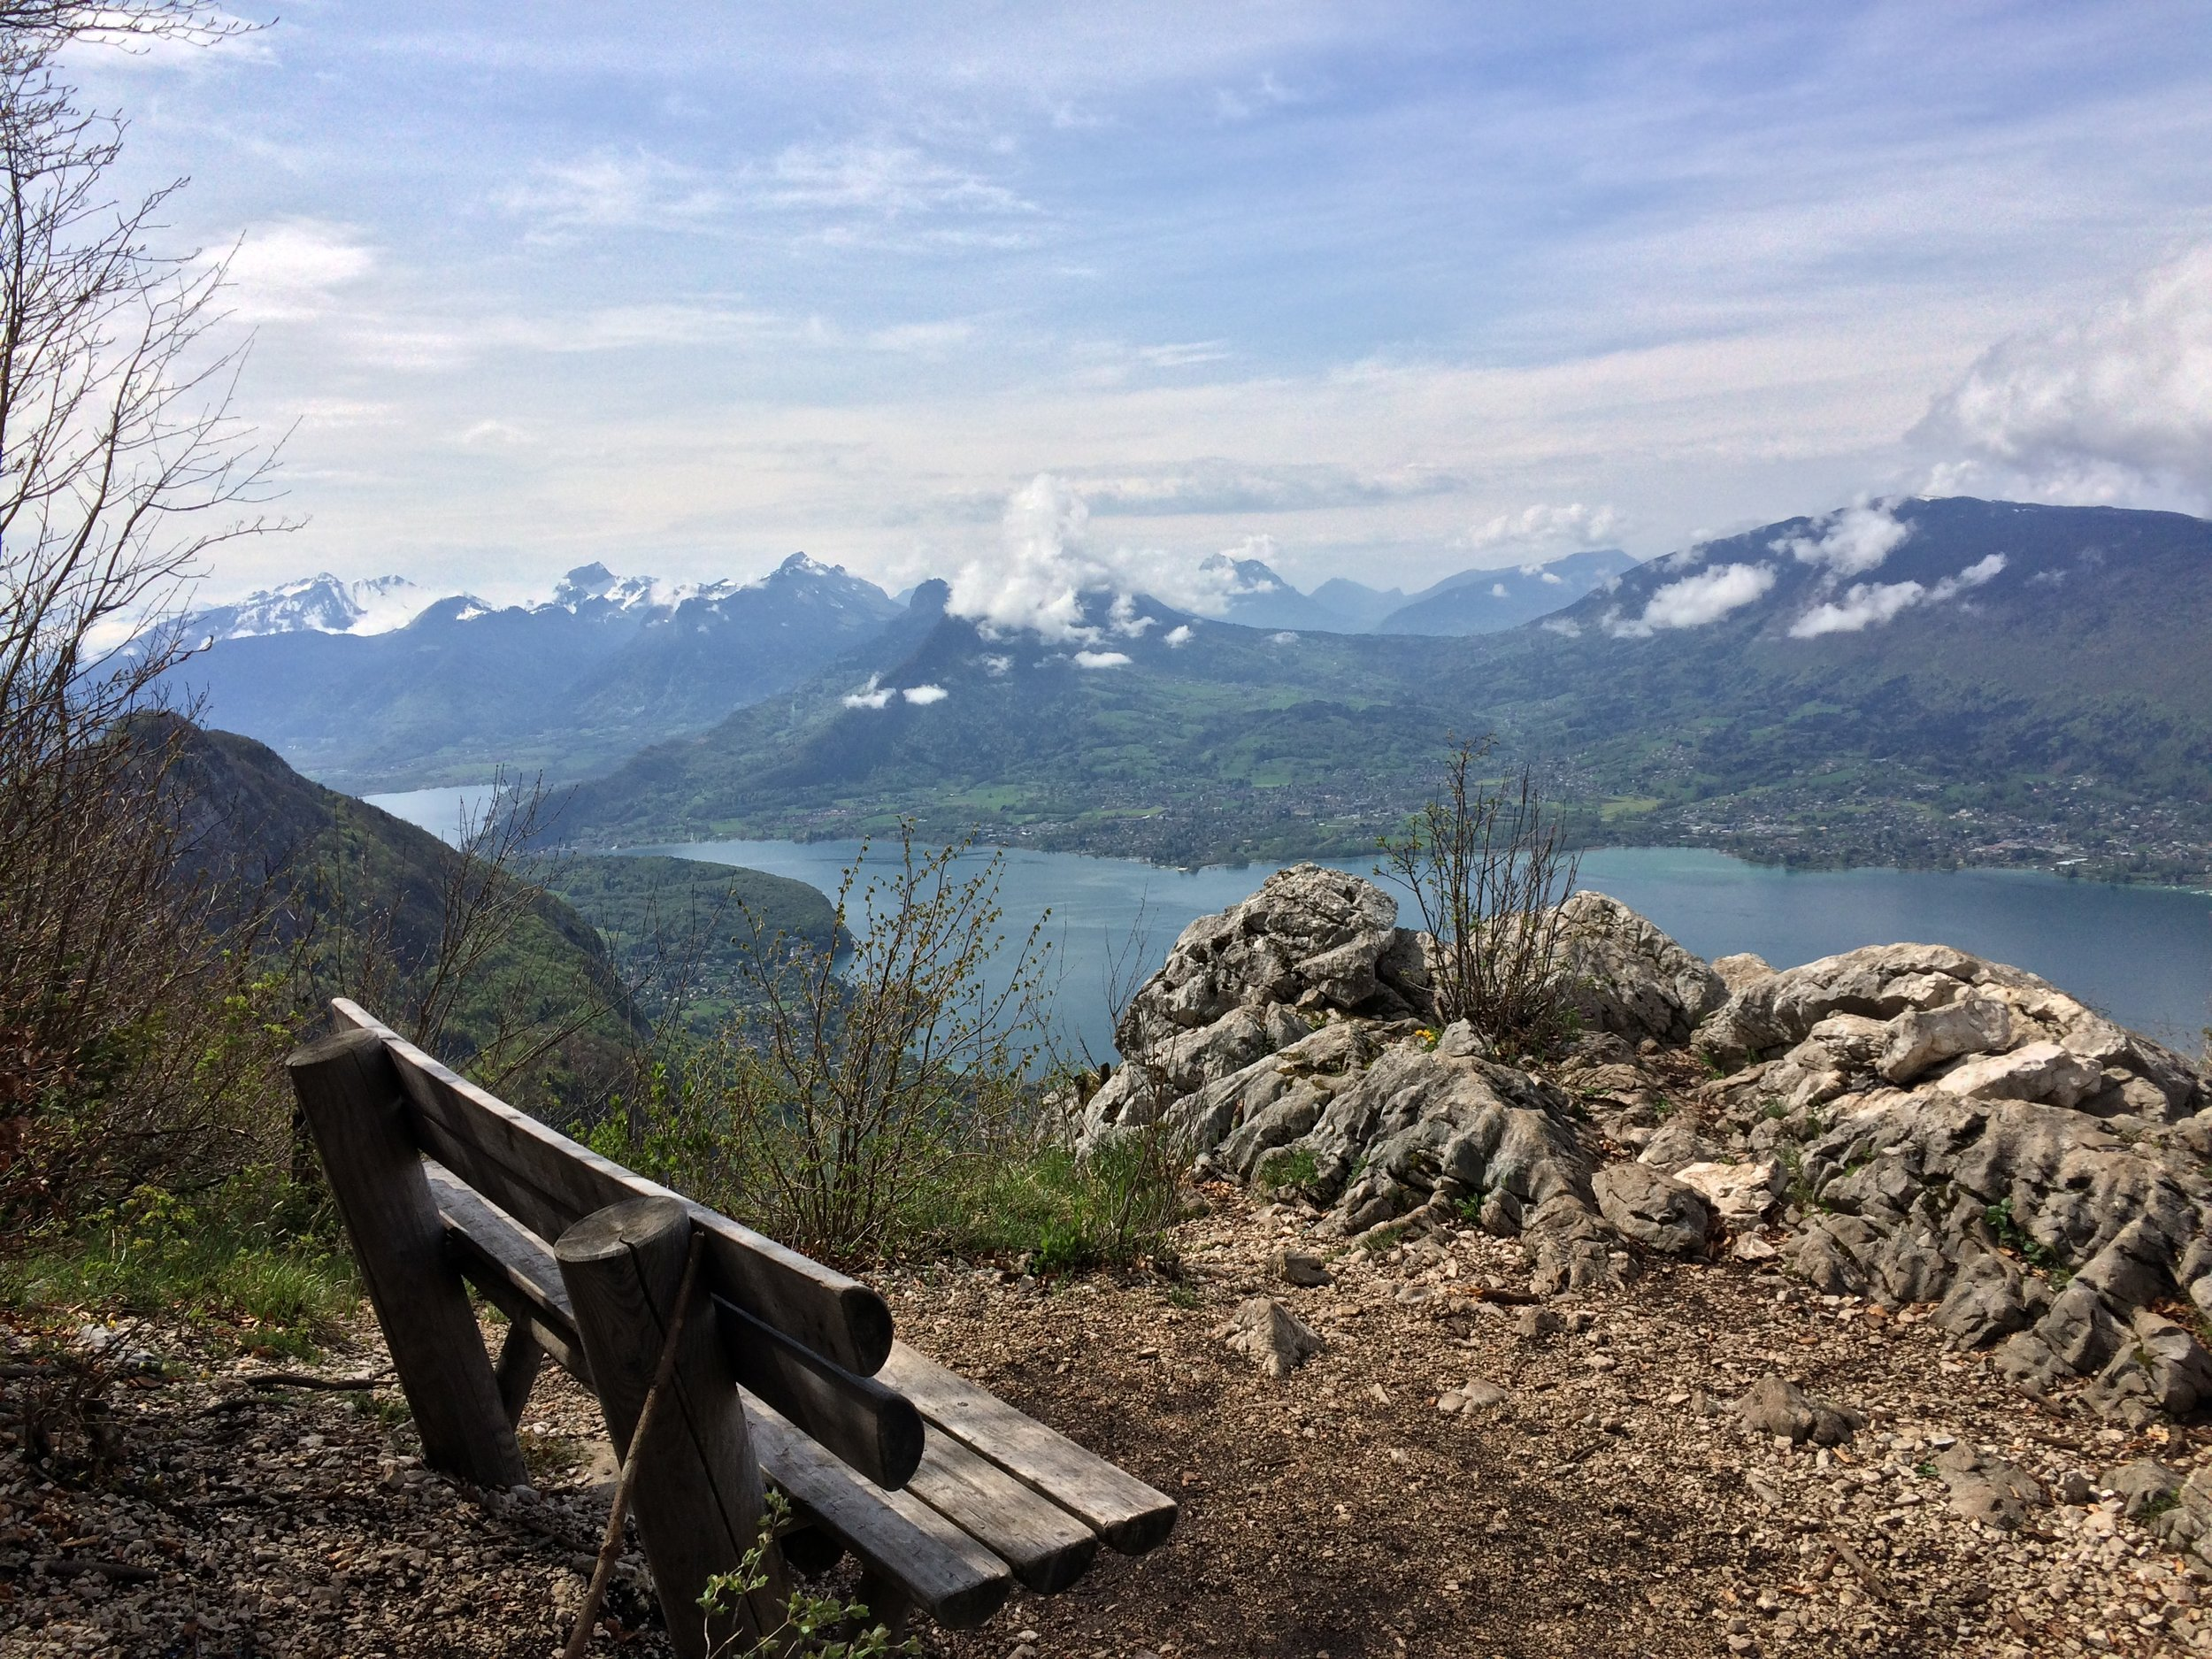 Mount Veyrier dominates Lake Annecy's eastern shore, and provides excellent views for any hiker.